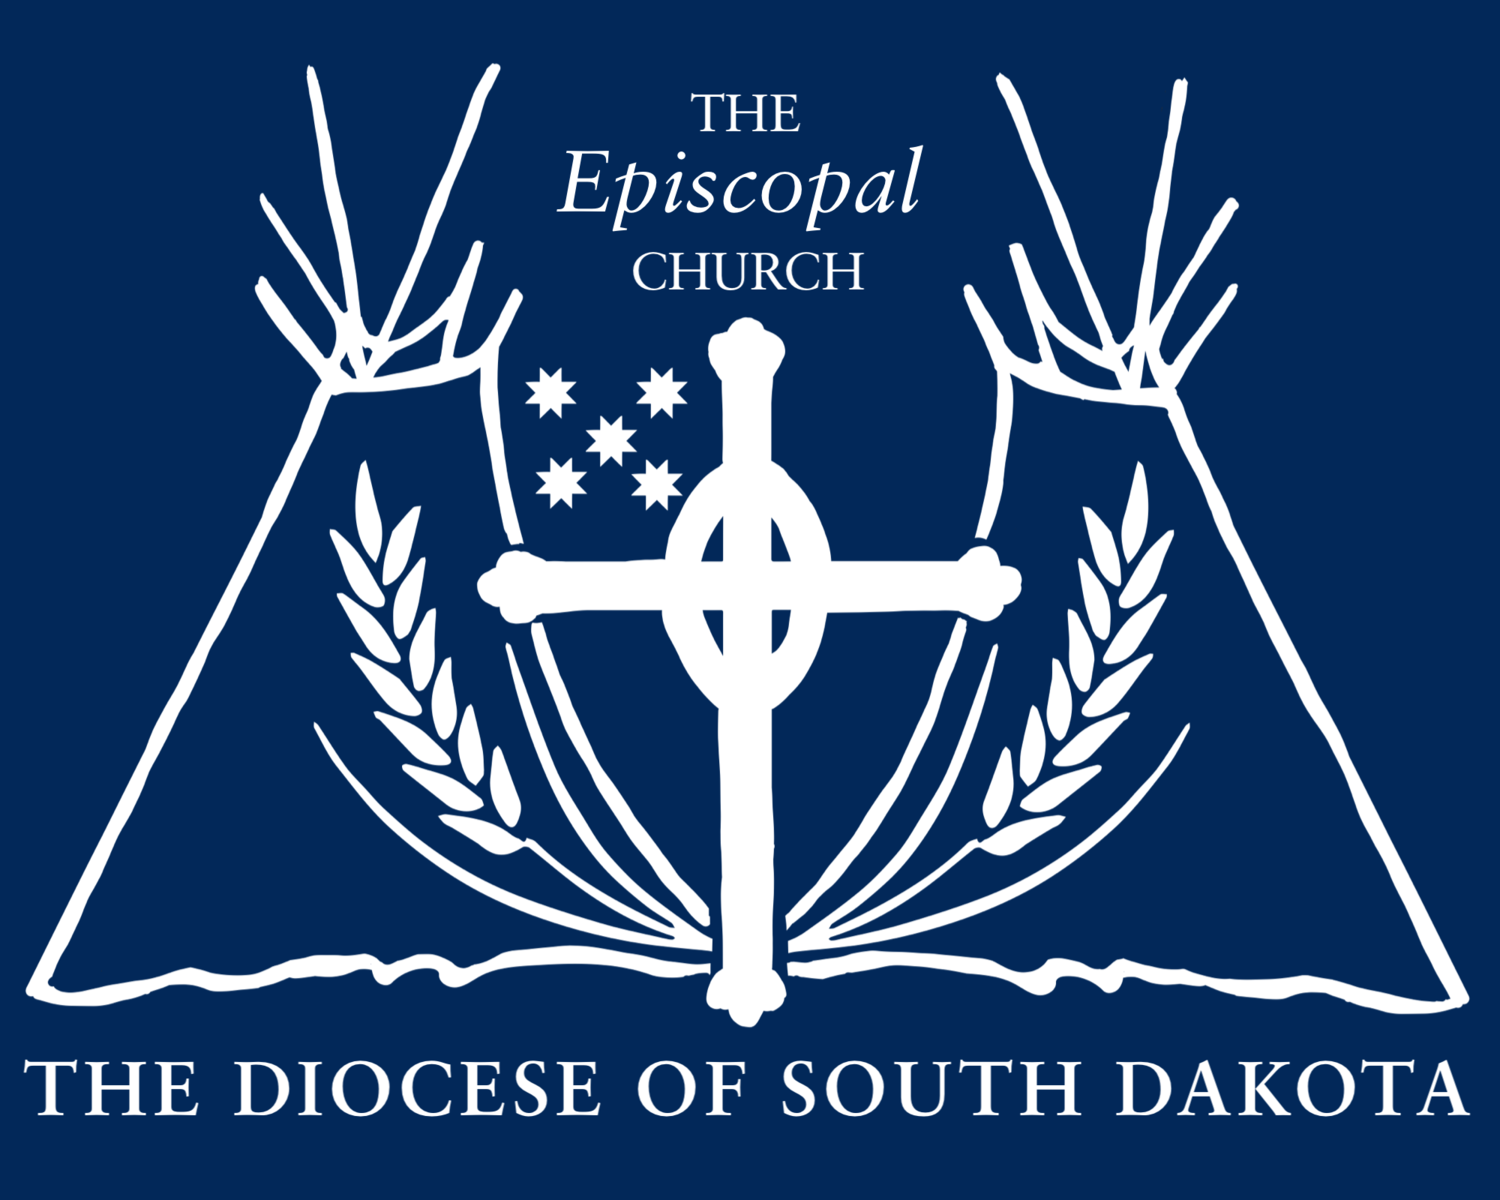 The Episcopal Diocese of South Dakota